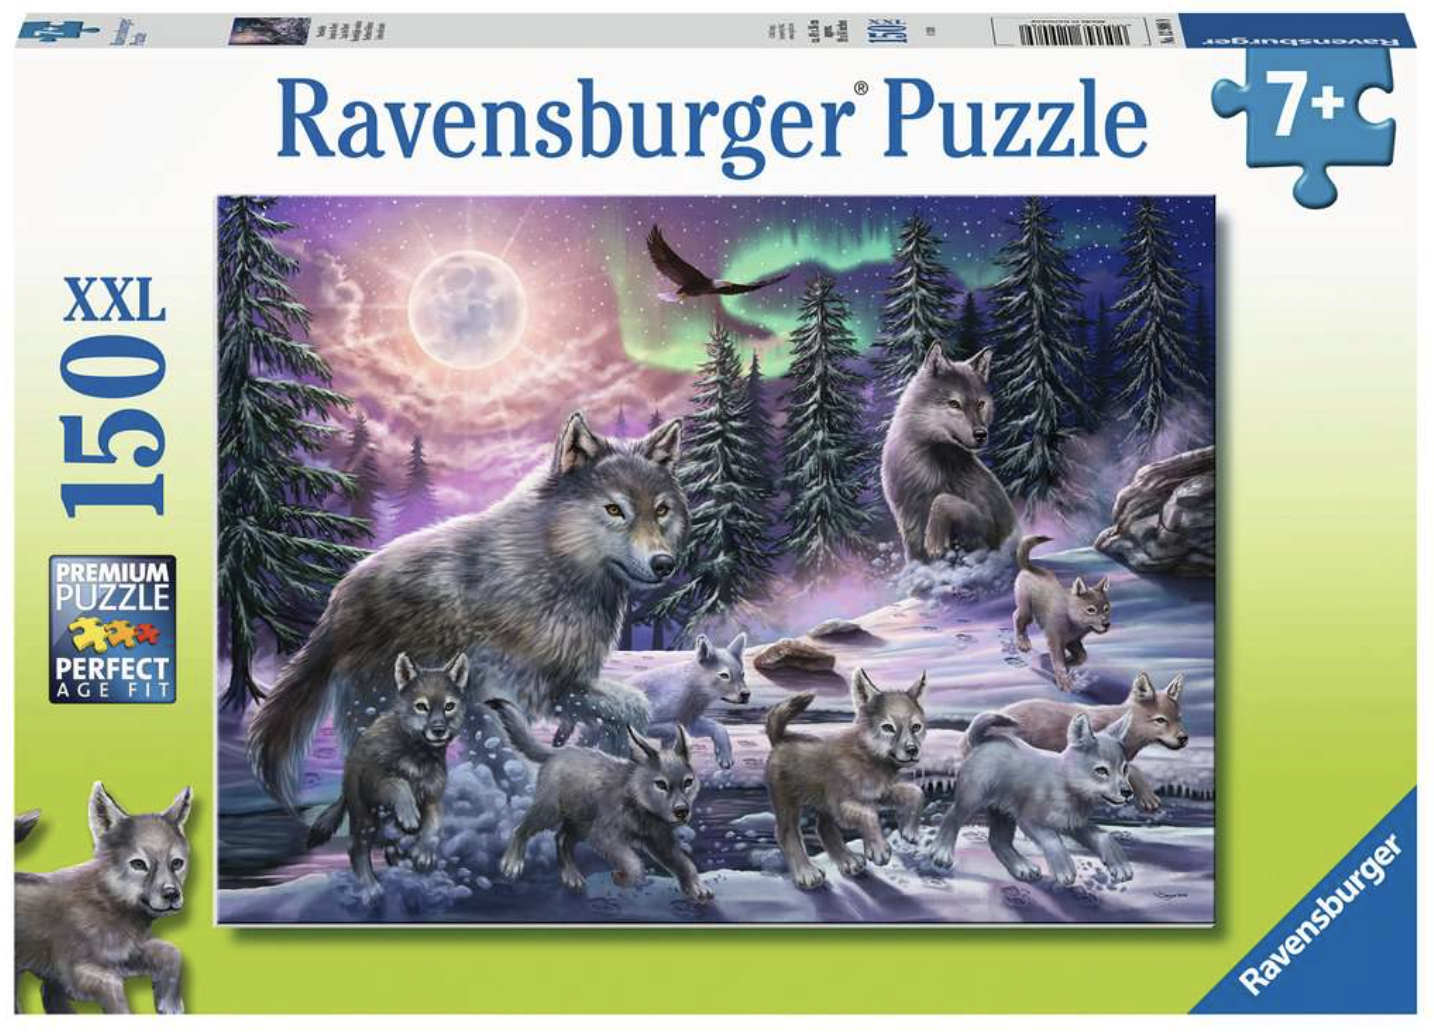 Northern Wolves 150 Piece Puzzle by Ravensburger